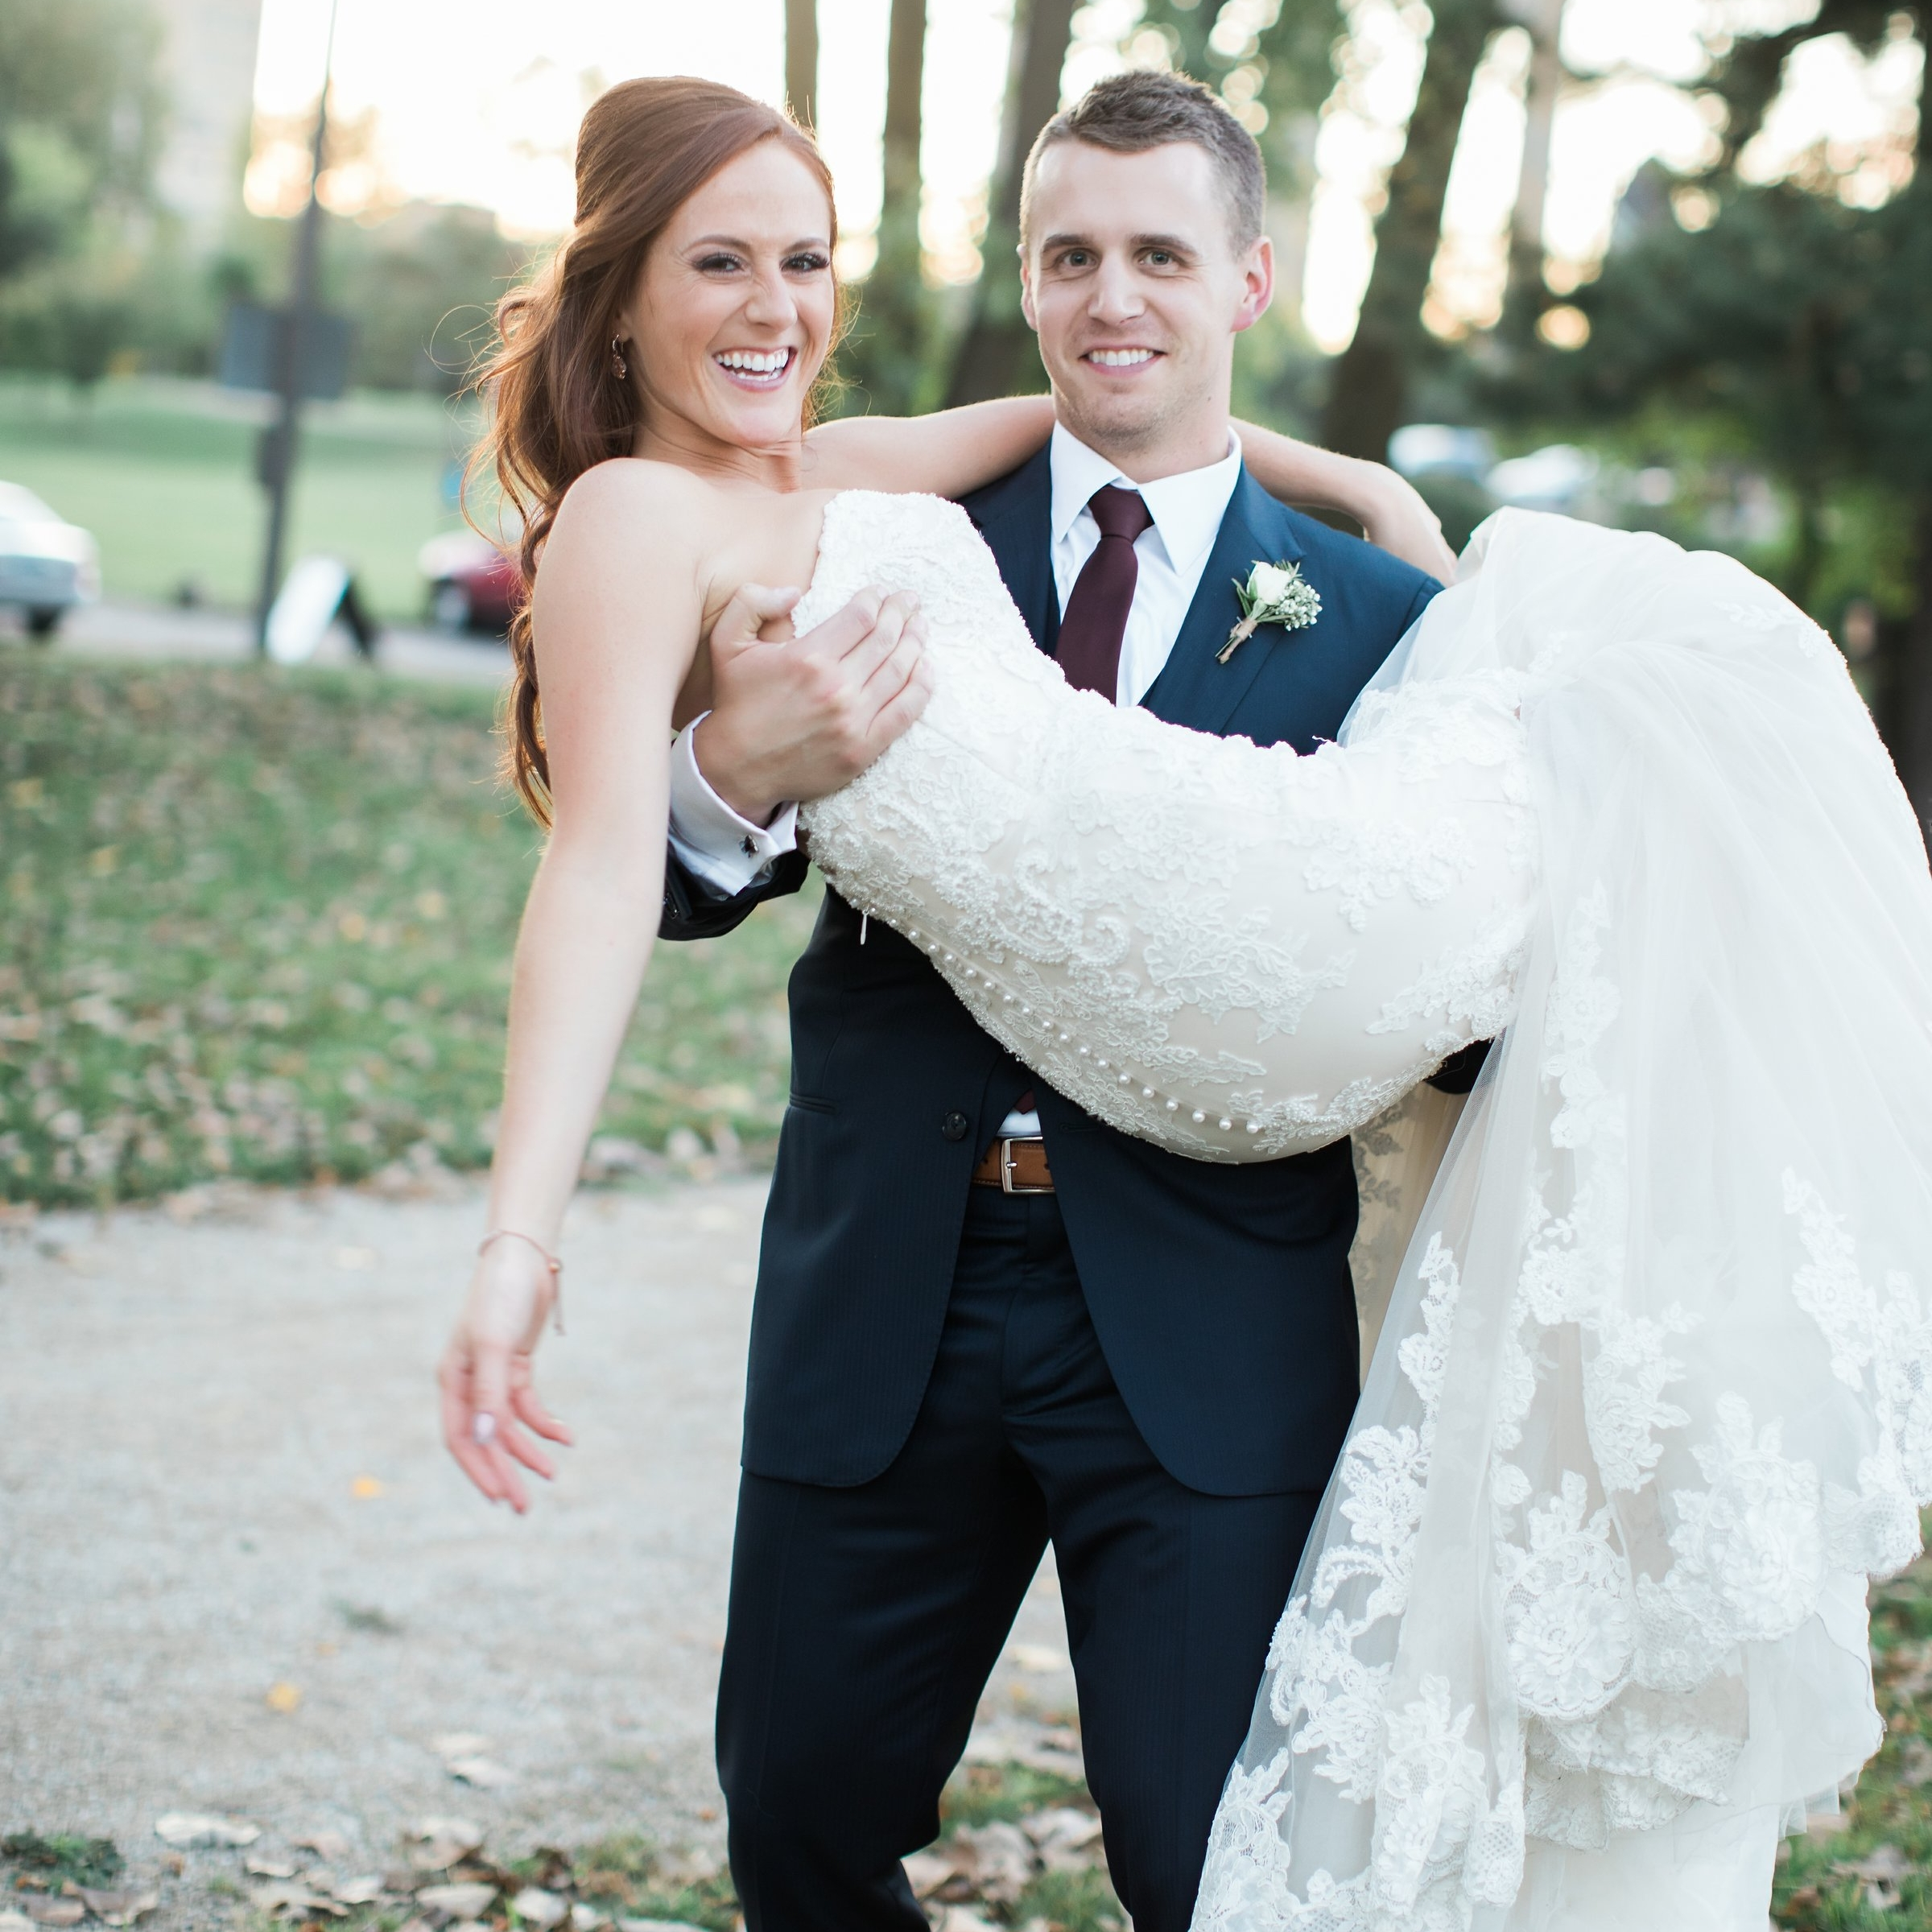 I'm in the business of carefree days - because the most important detail, of any wedding, is a happy couple